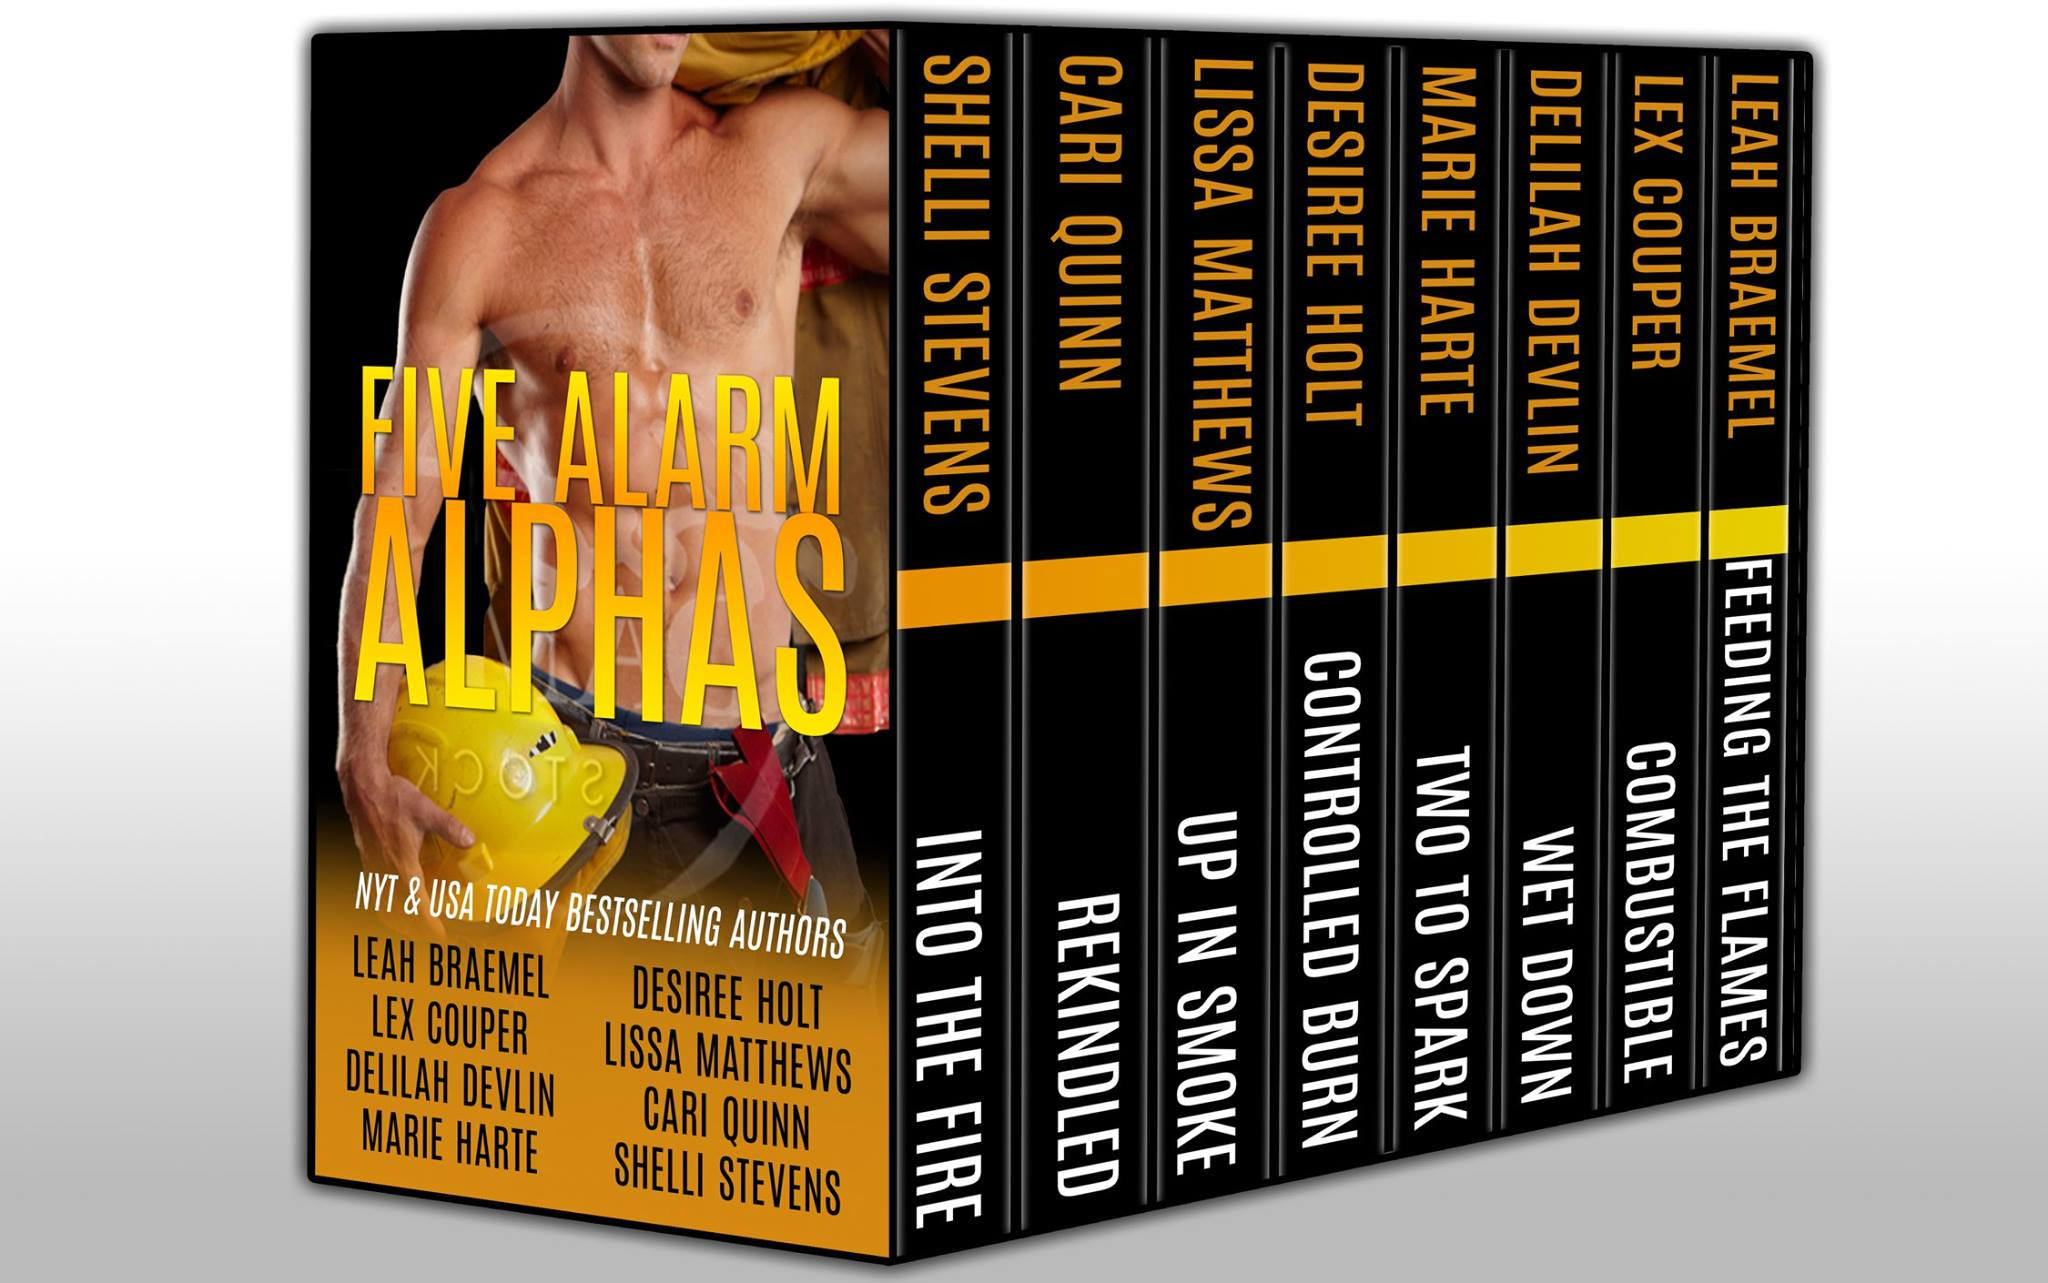 Five Alarm Alphas – hotter than hot!